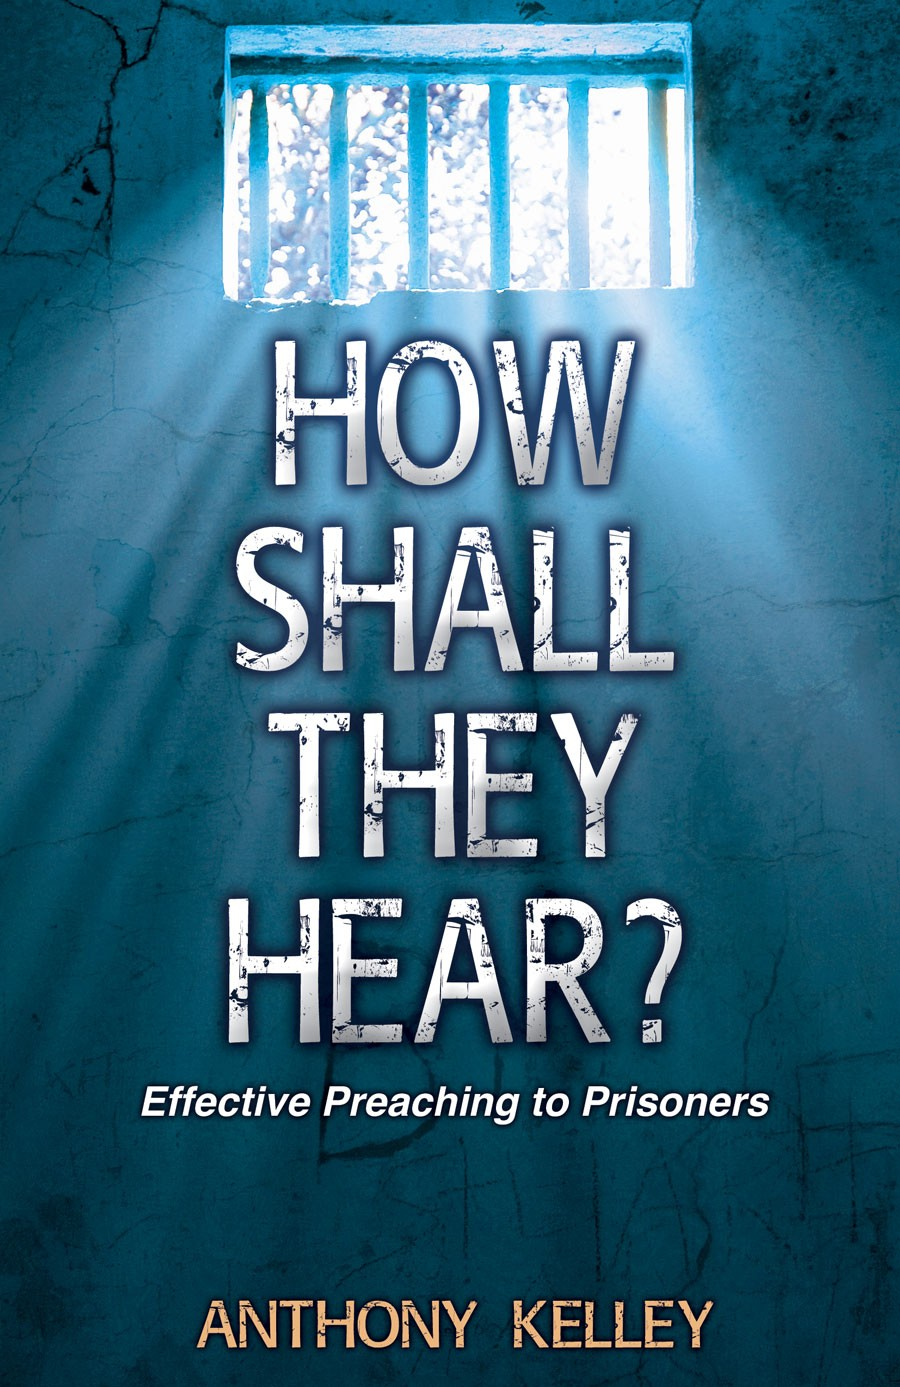 How Shall They Hear? Effective Preaching to Prisoners